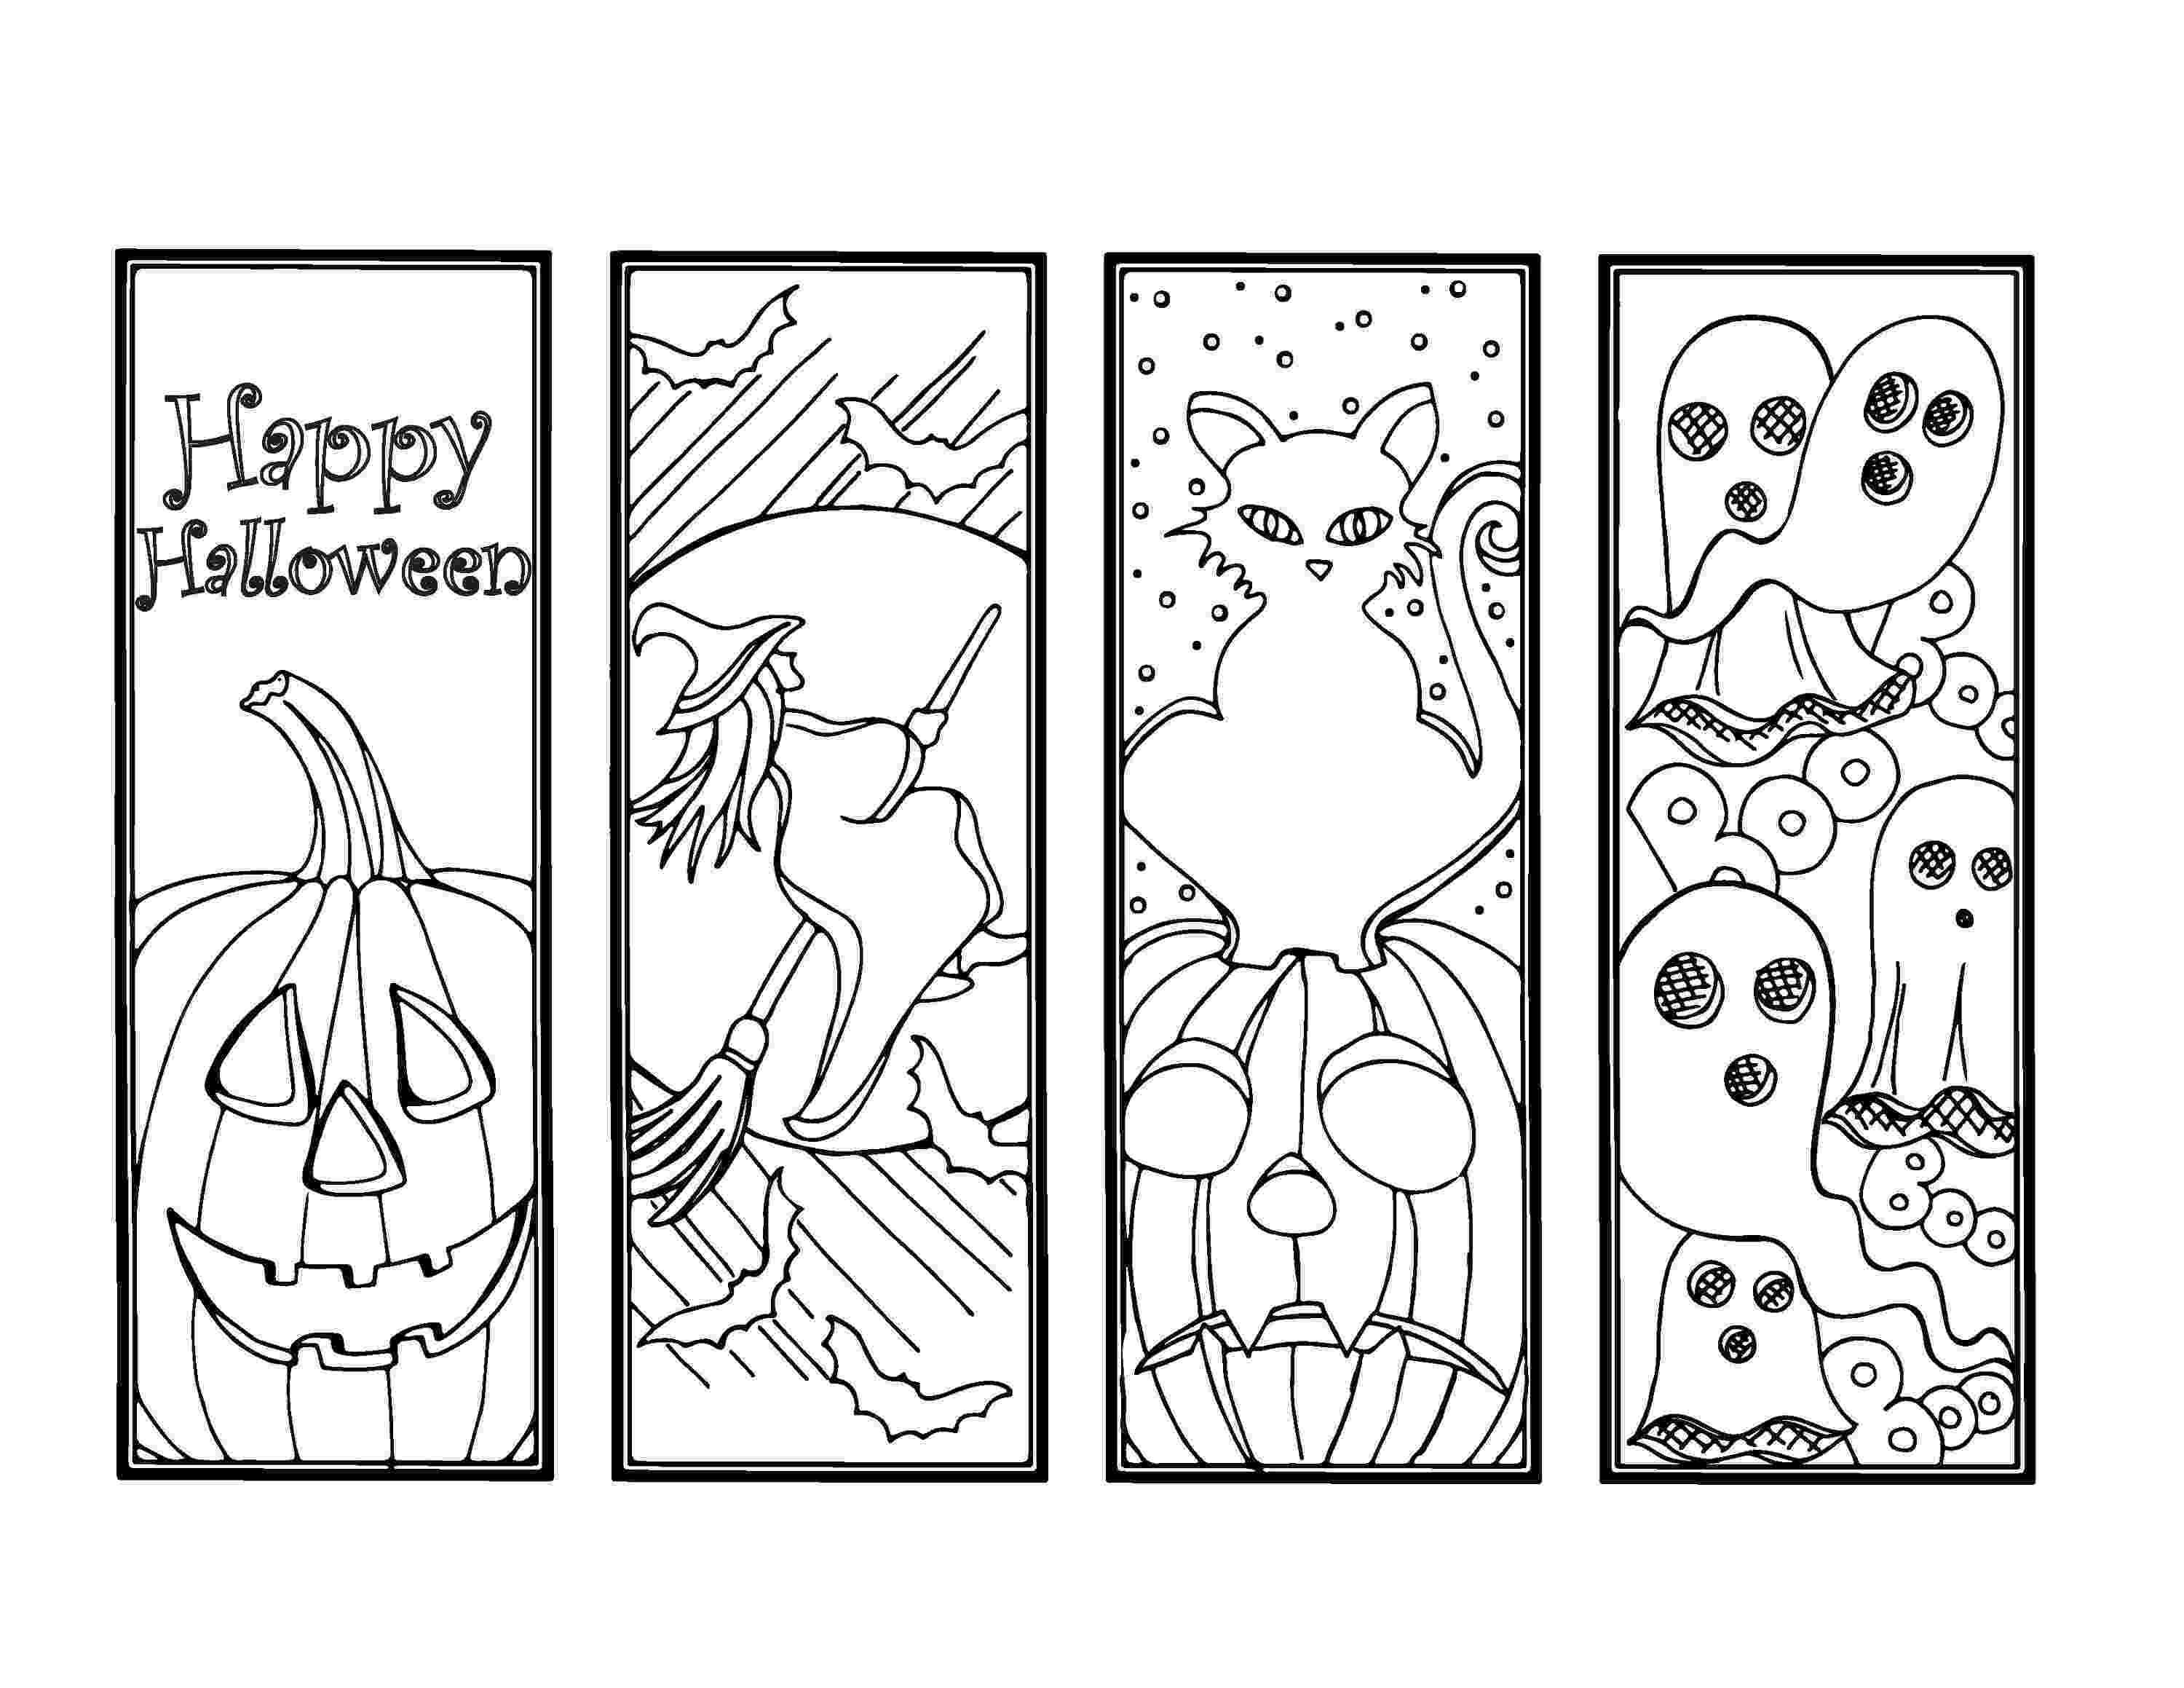 bookmarks coloring sheets diy halloween bookmarks holiday crafts color your own etsy bookmarks coloring sheets